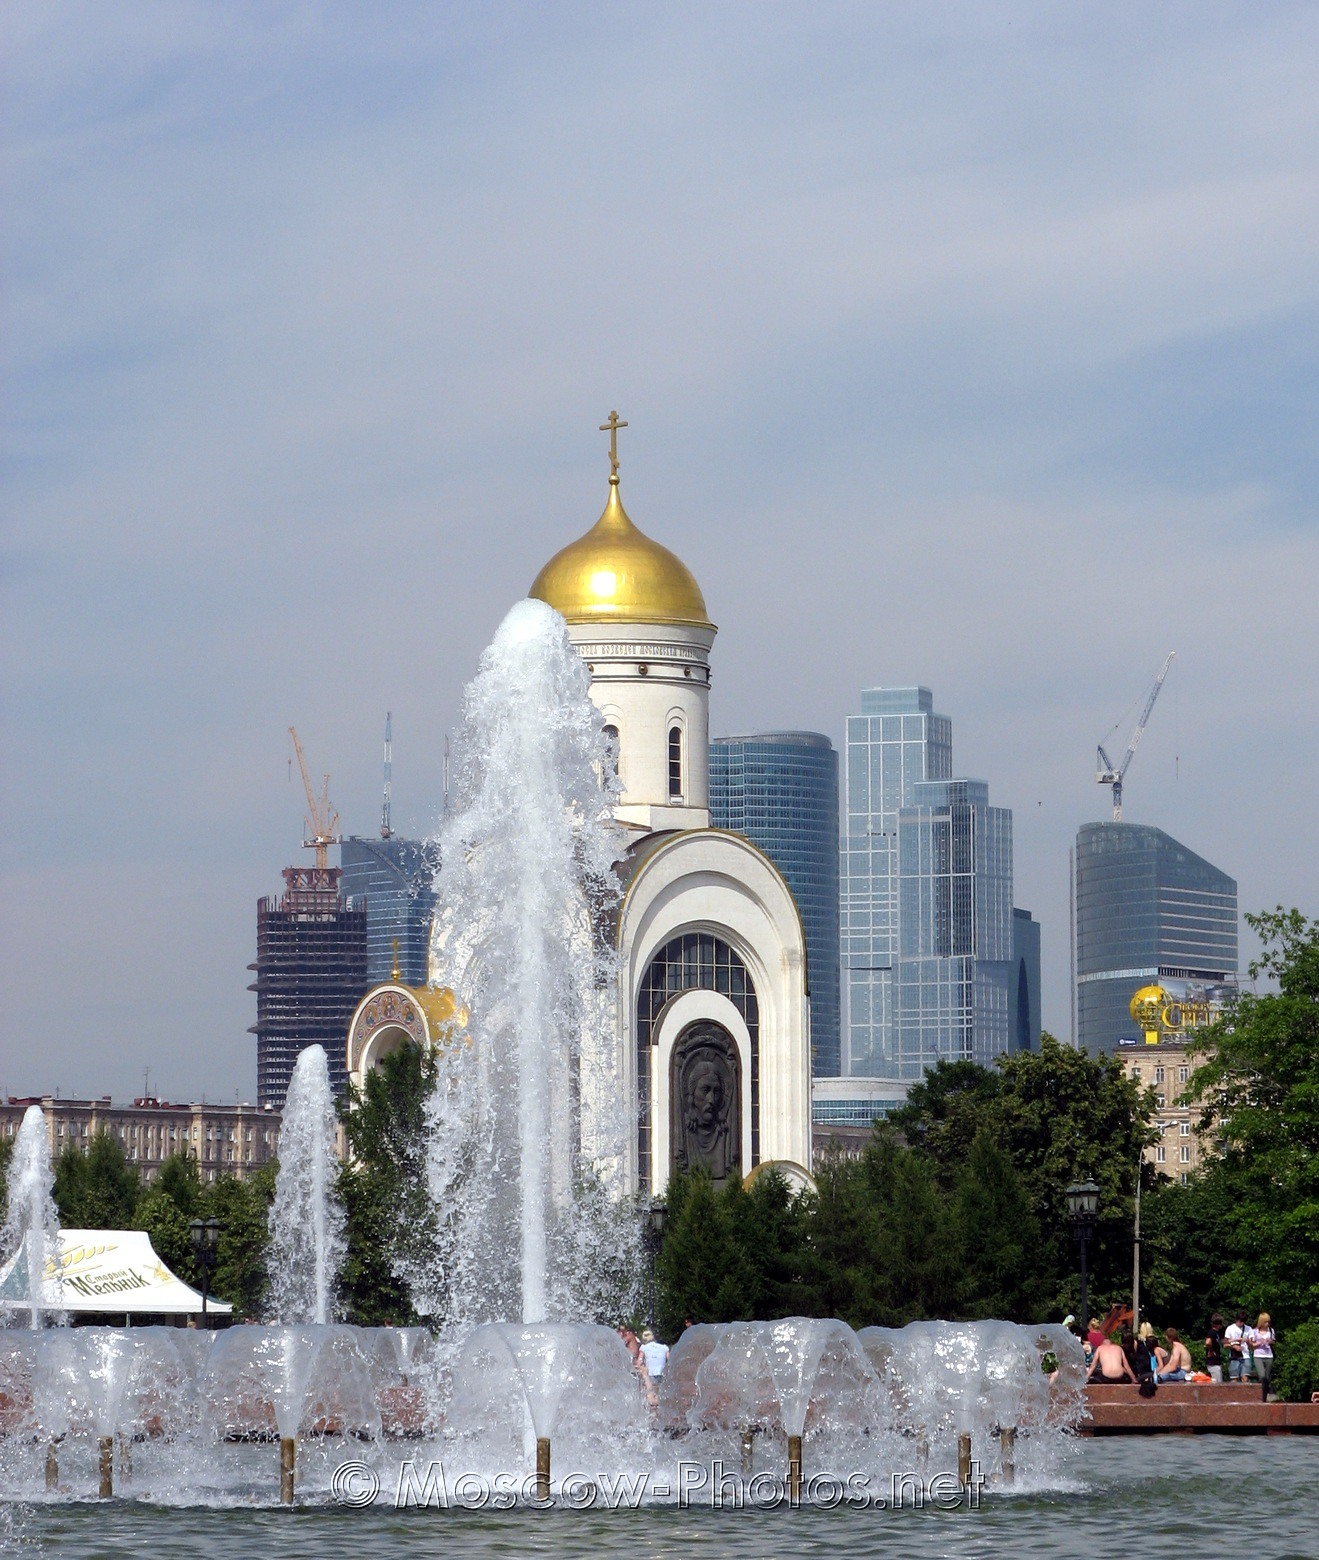 The fountain in Moscow